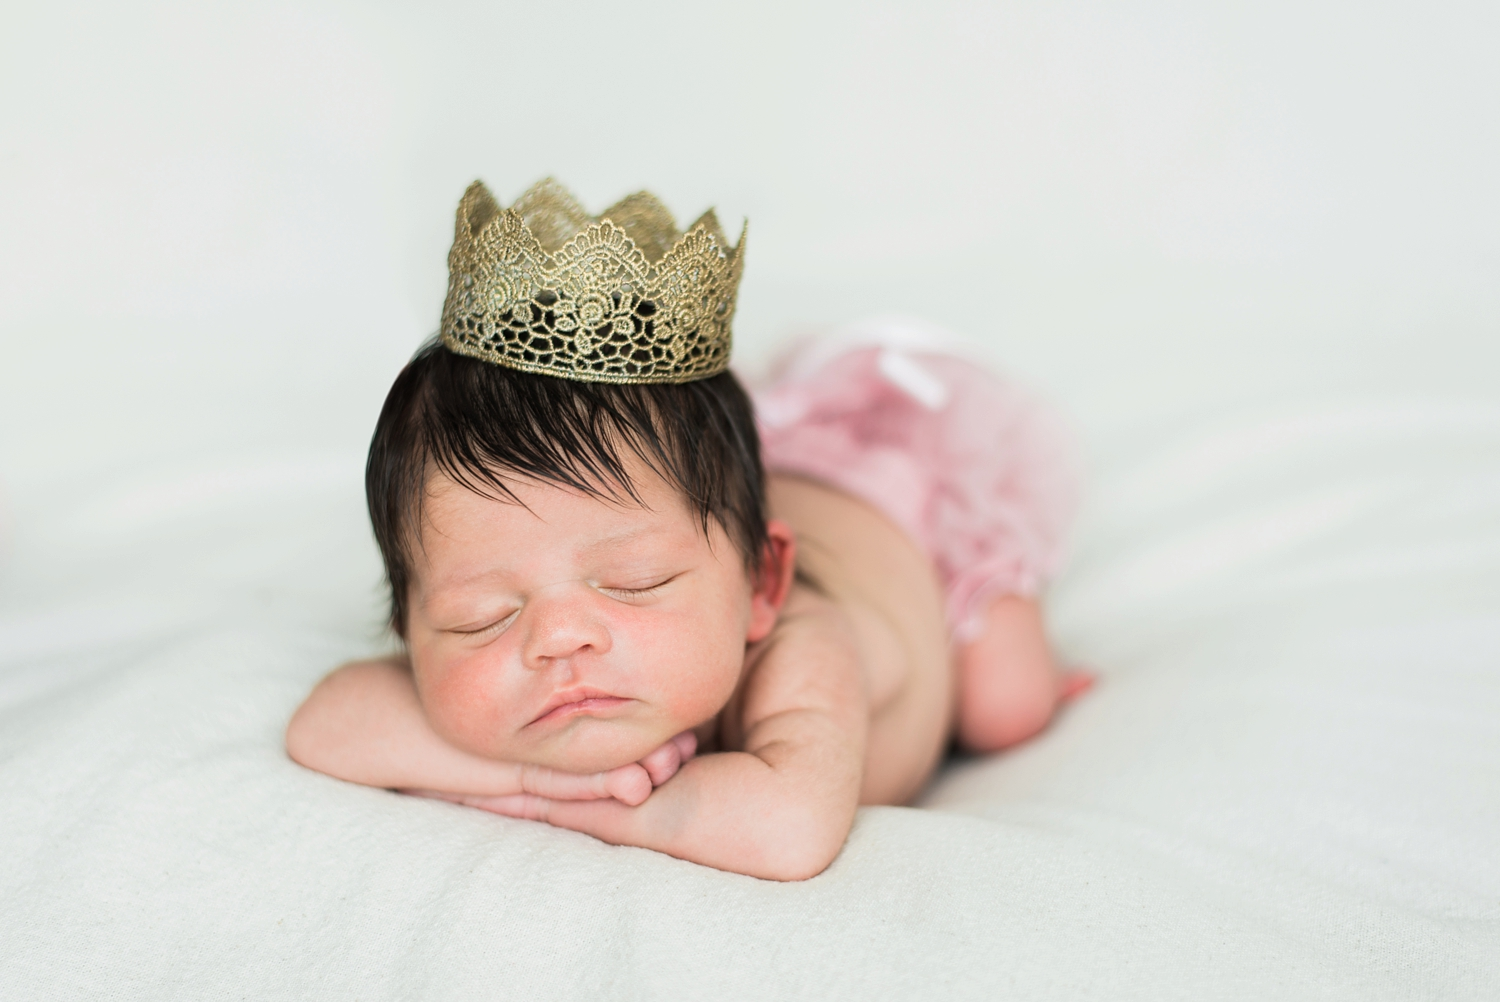 portland-newborn-photographer-baby-girl-crown-shelley-marie-photo-13